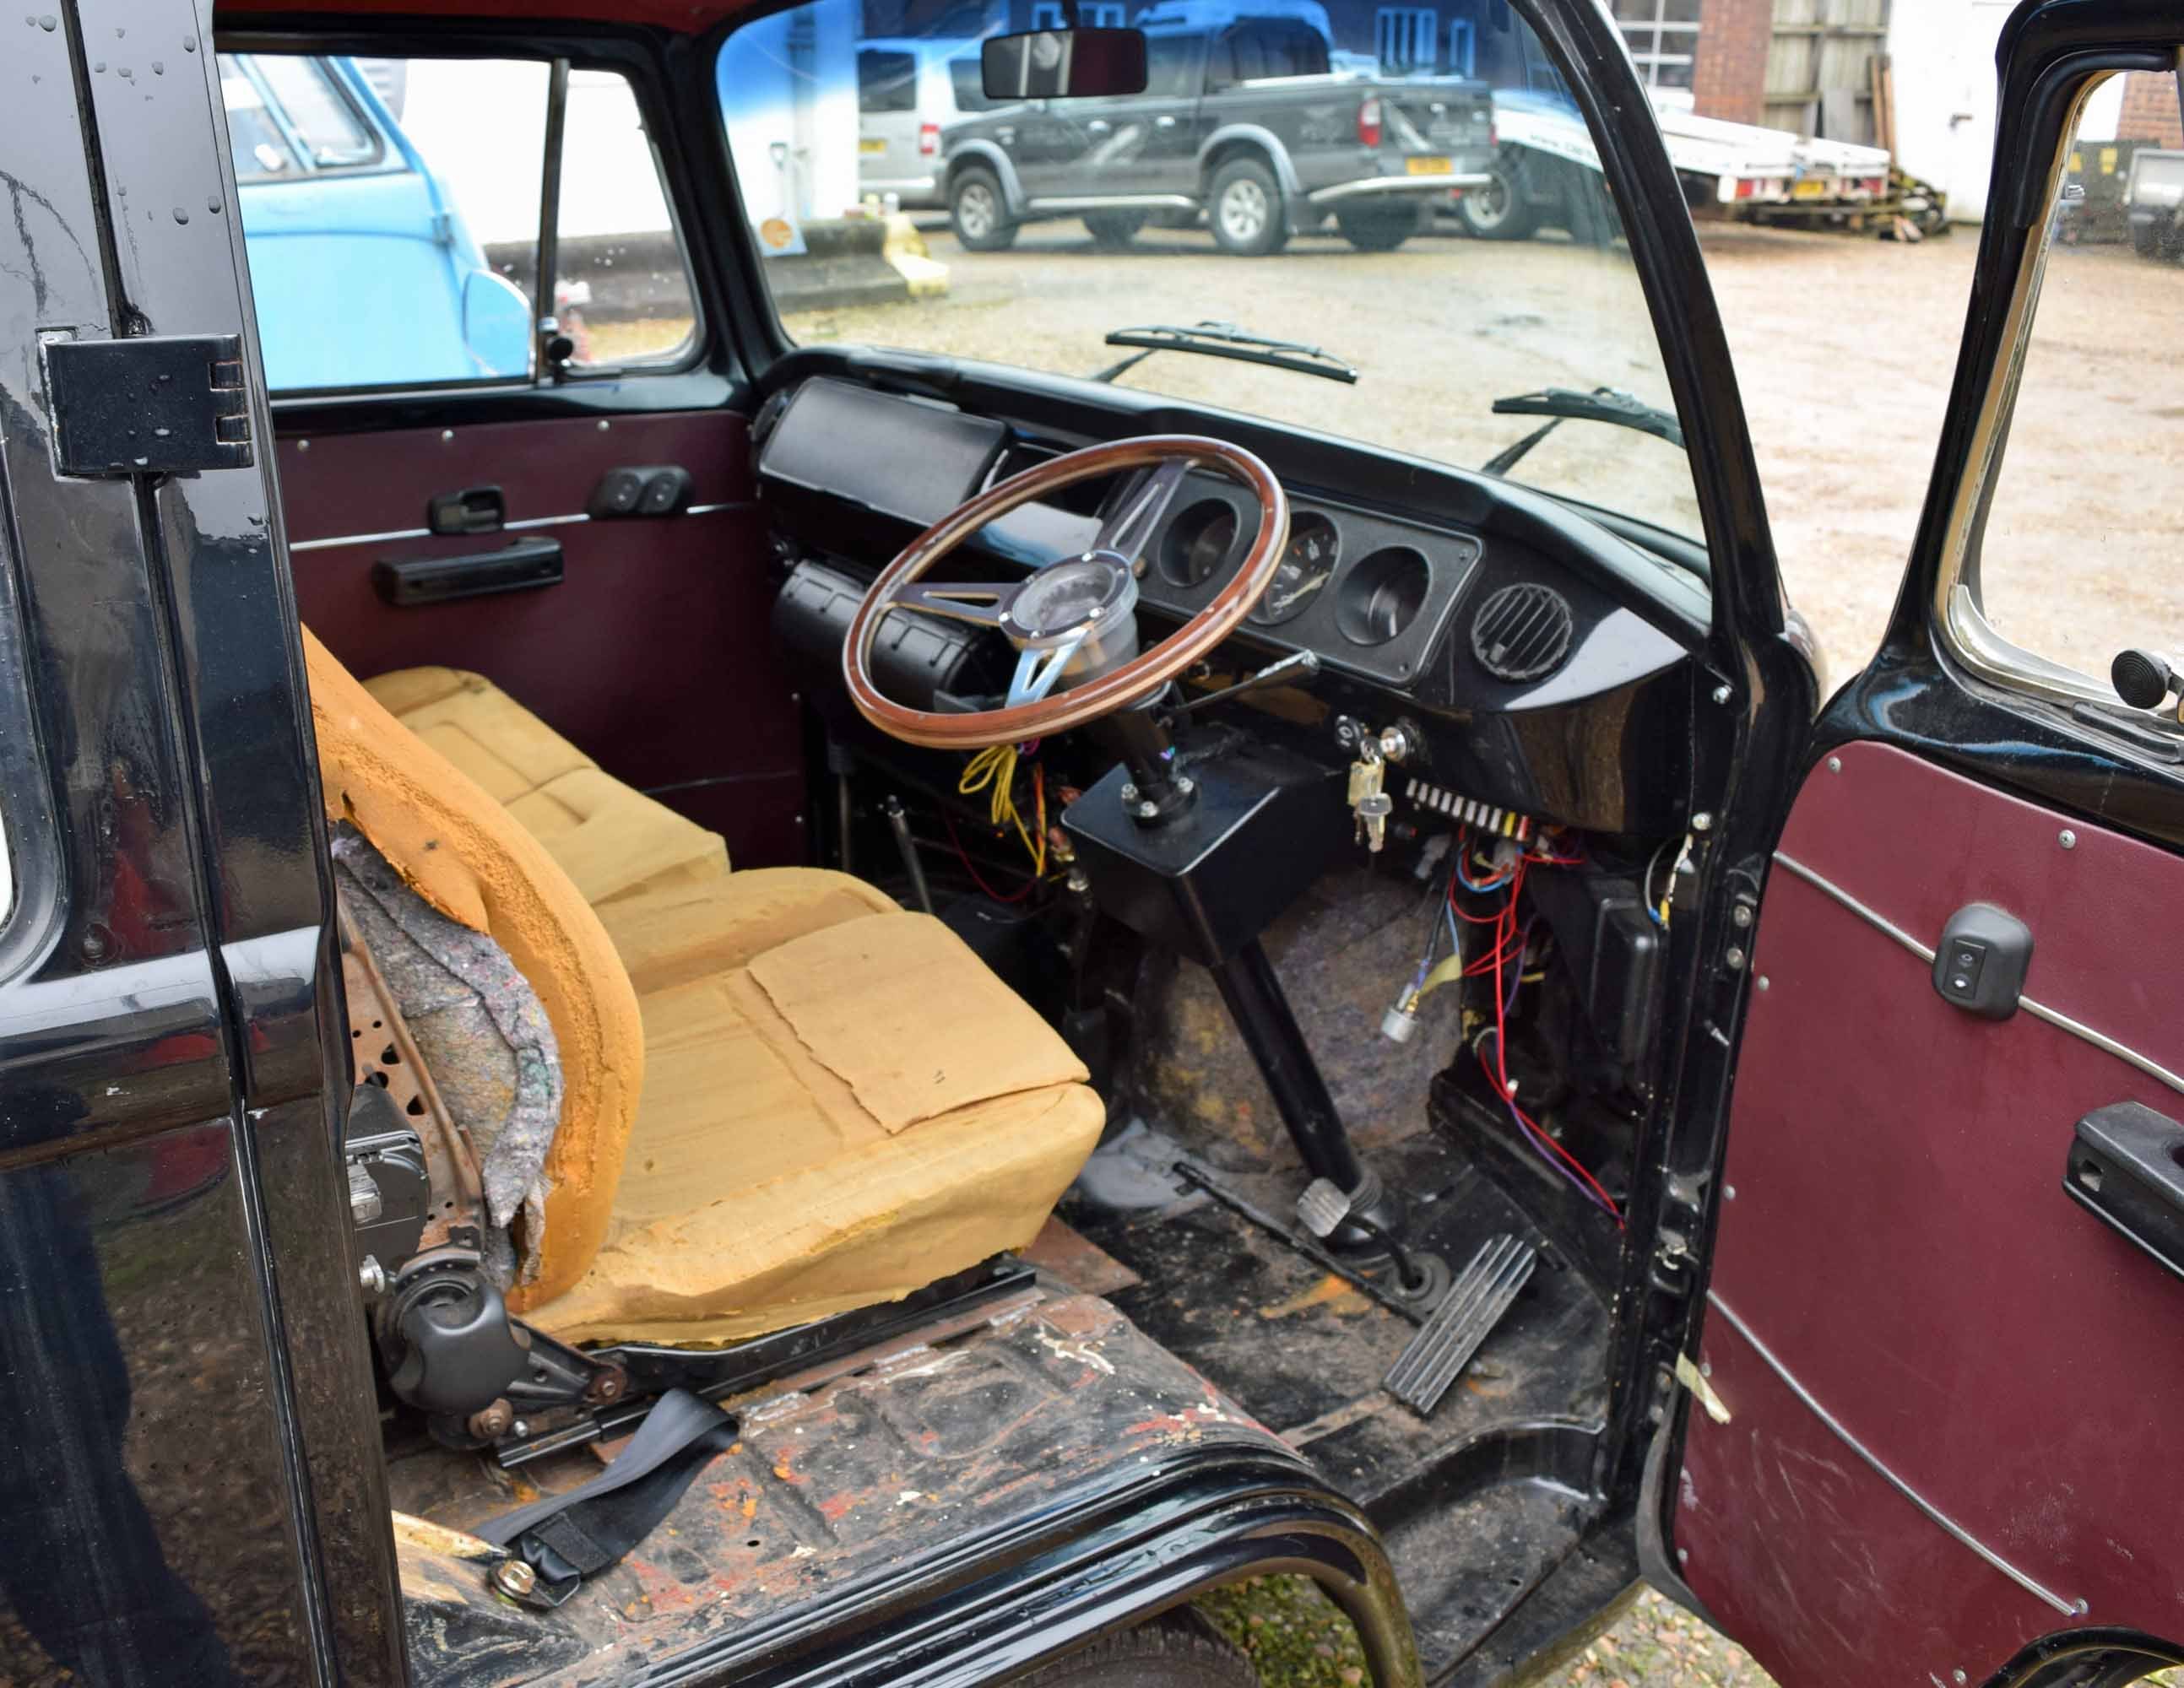 Lot 33 - 1983 VOLKSWAGEN Type 2 Bay Window Crew Cab Pick-Up, (Brazilian Import) 1641cc Air Cooled Engine, 3-